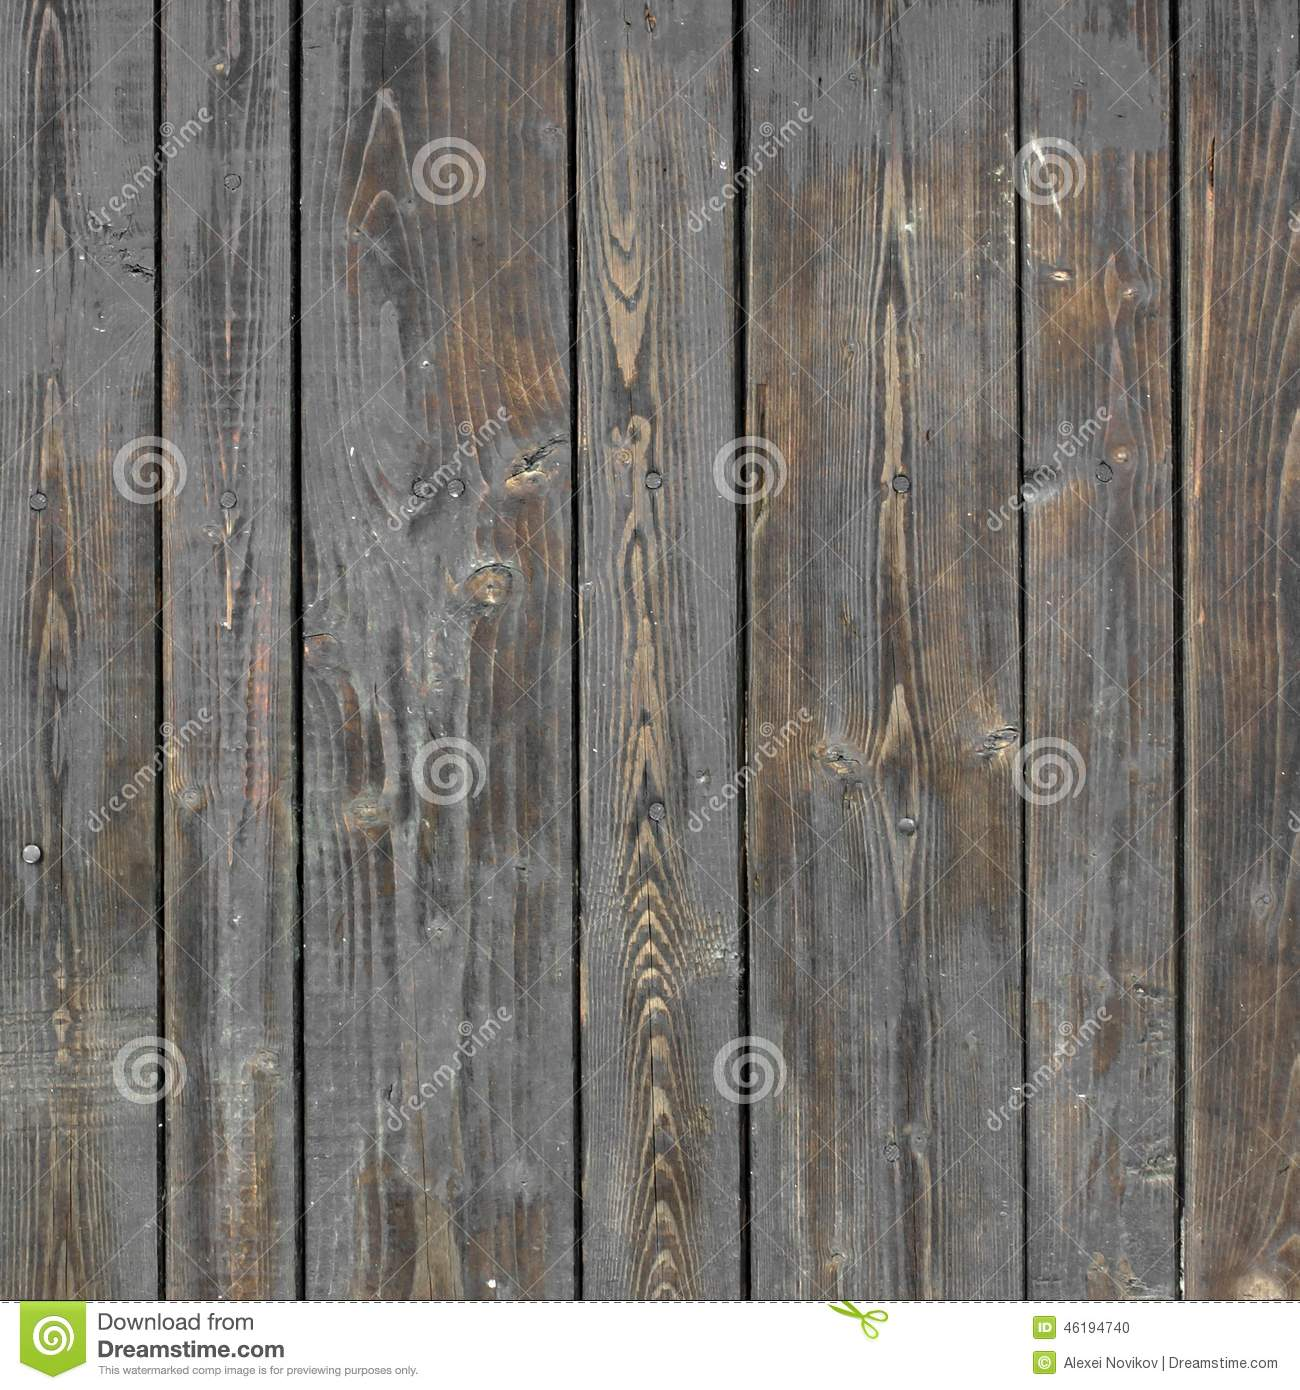 Old Wood Flat Plank Panel  Background And Texture For Text Or Image